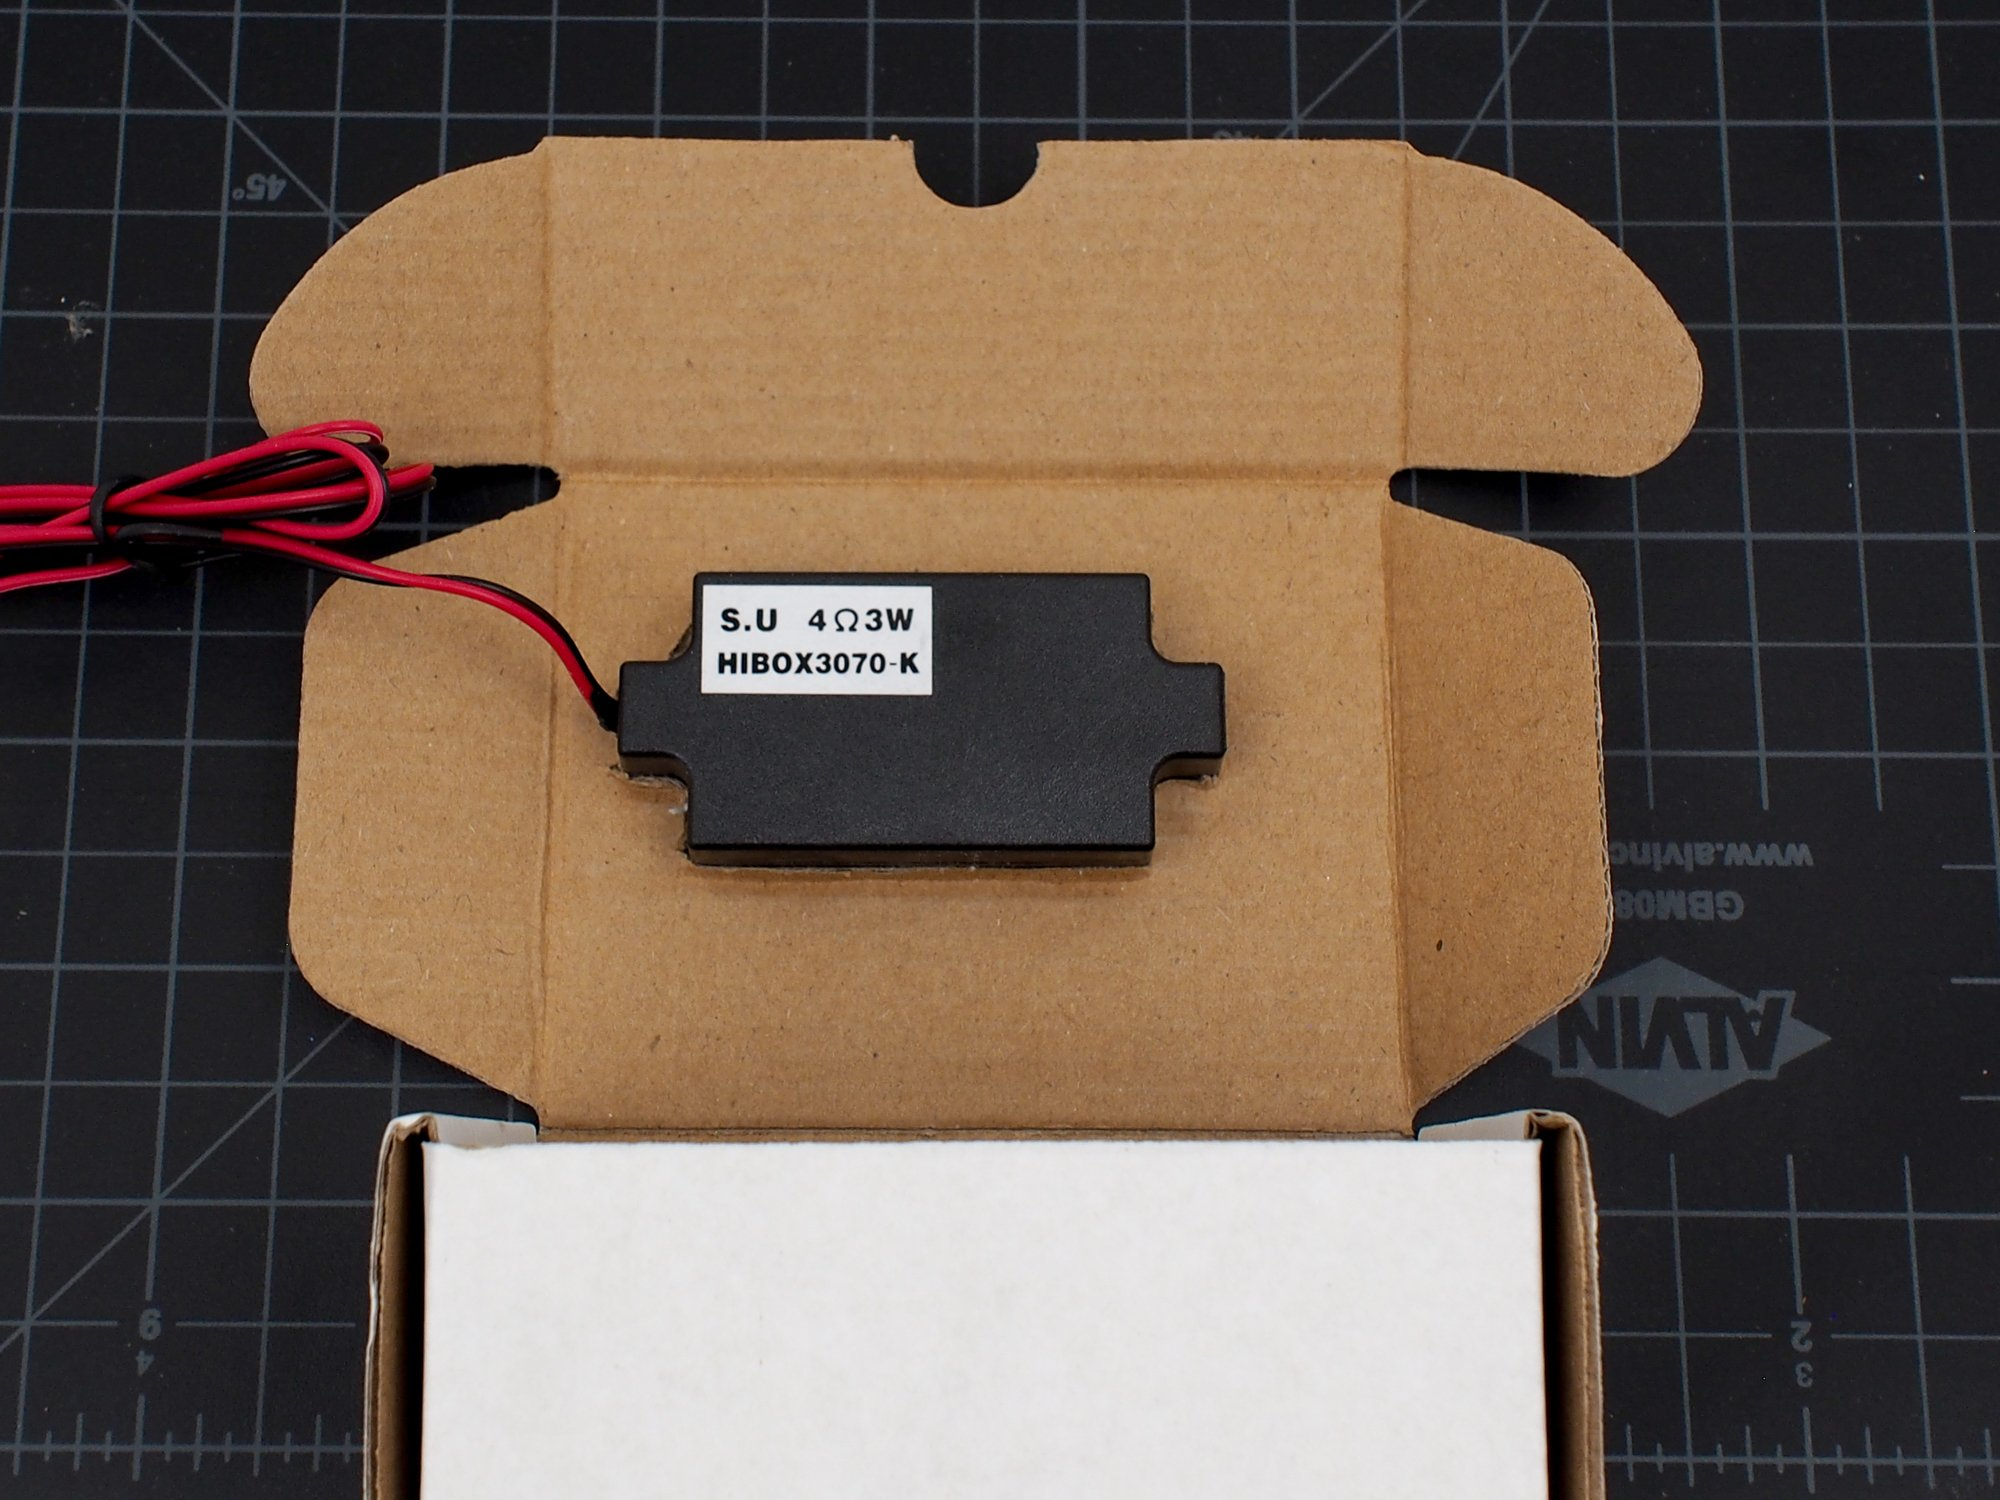 adafruit_products_P5240033_2k.jpg